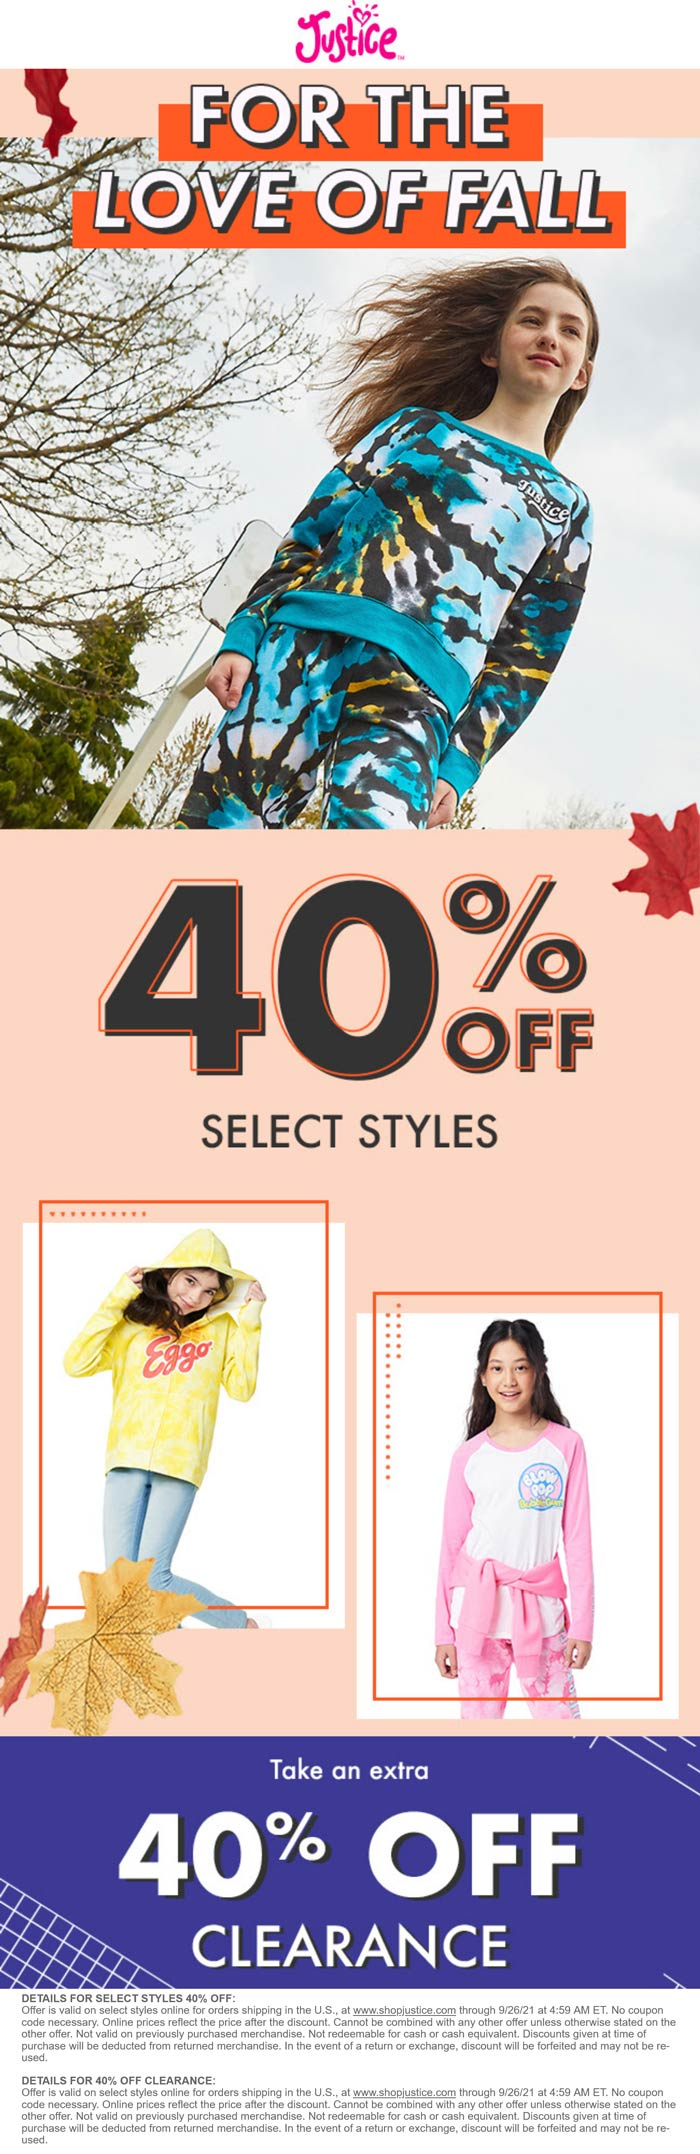 Justice stores Coupon  Extra 40% off clearance & more today at Justice #justice